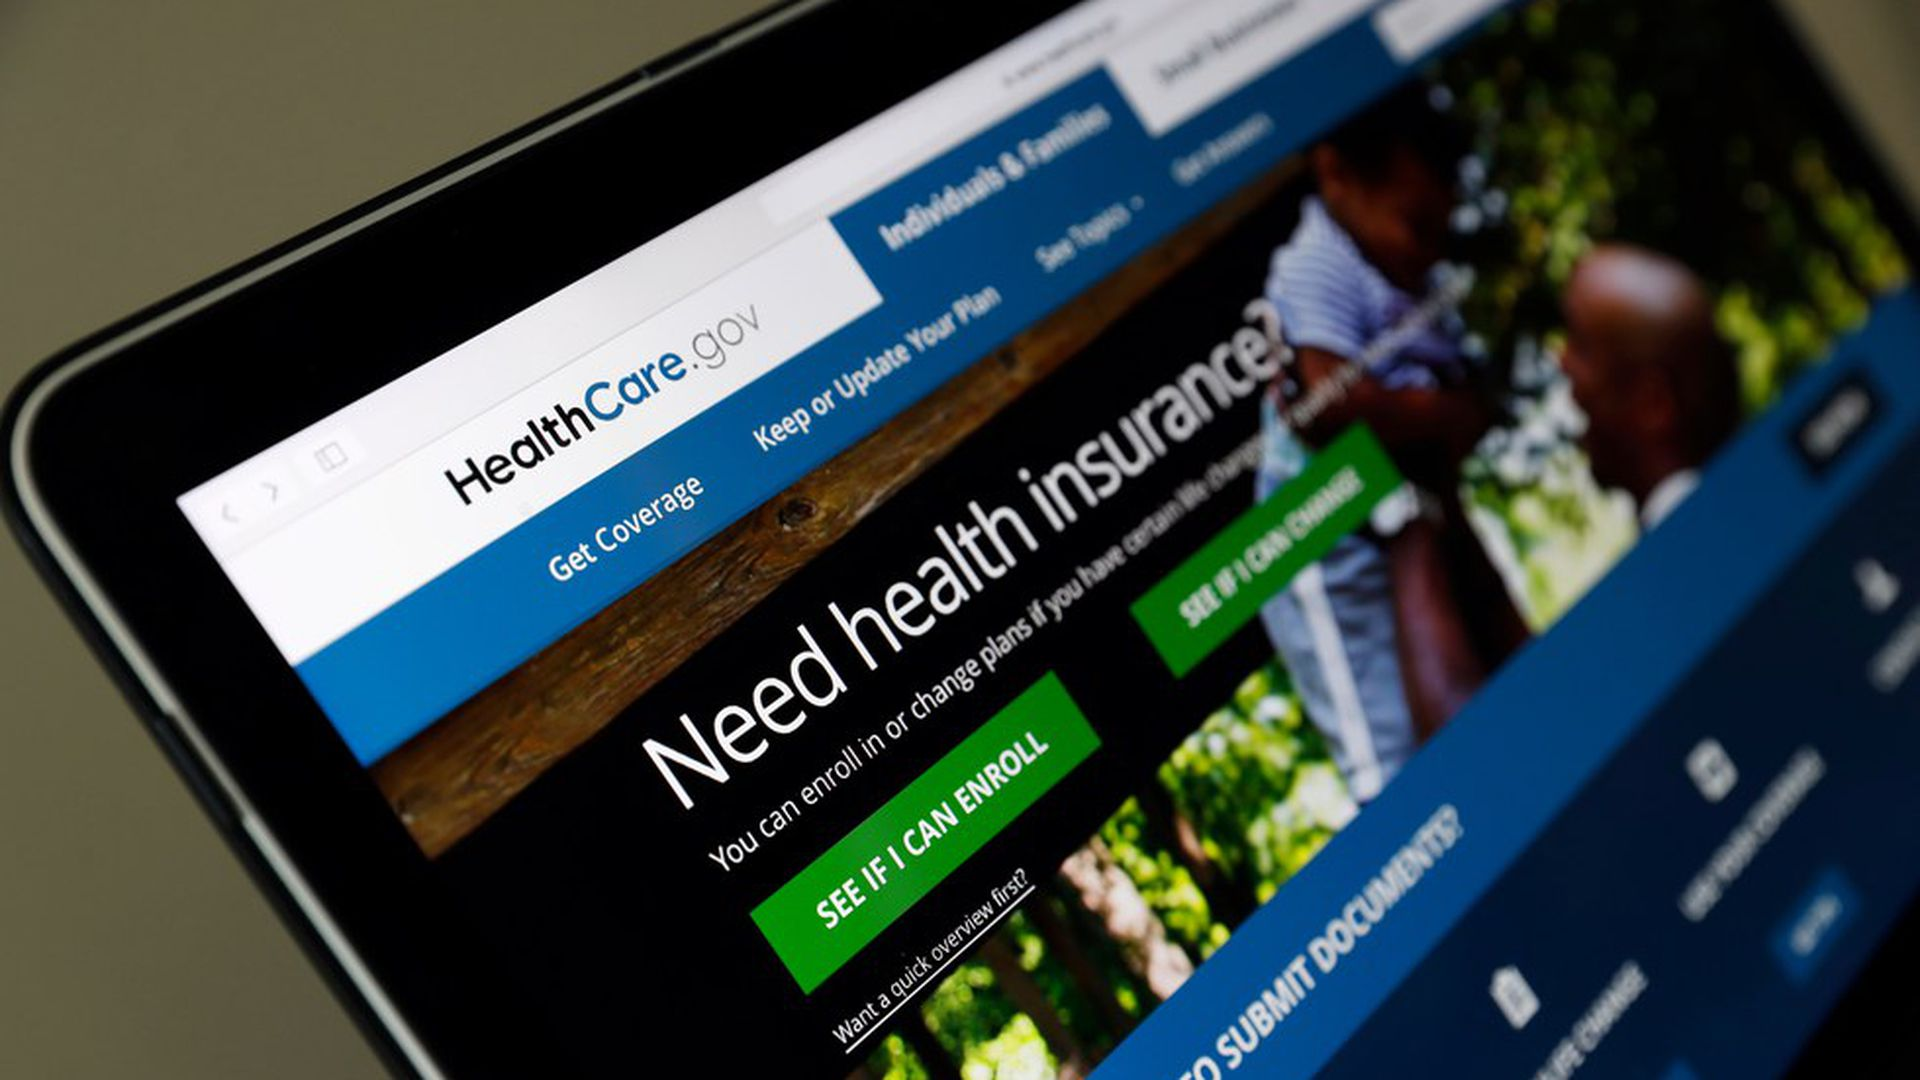 More than 600k people signed up for the ACA in week one